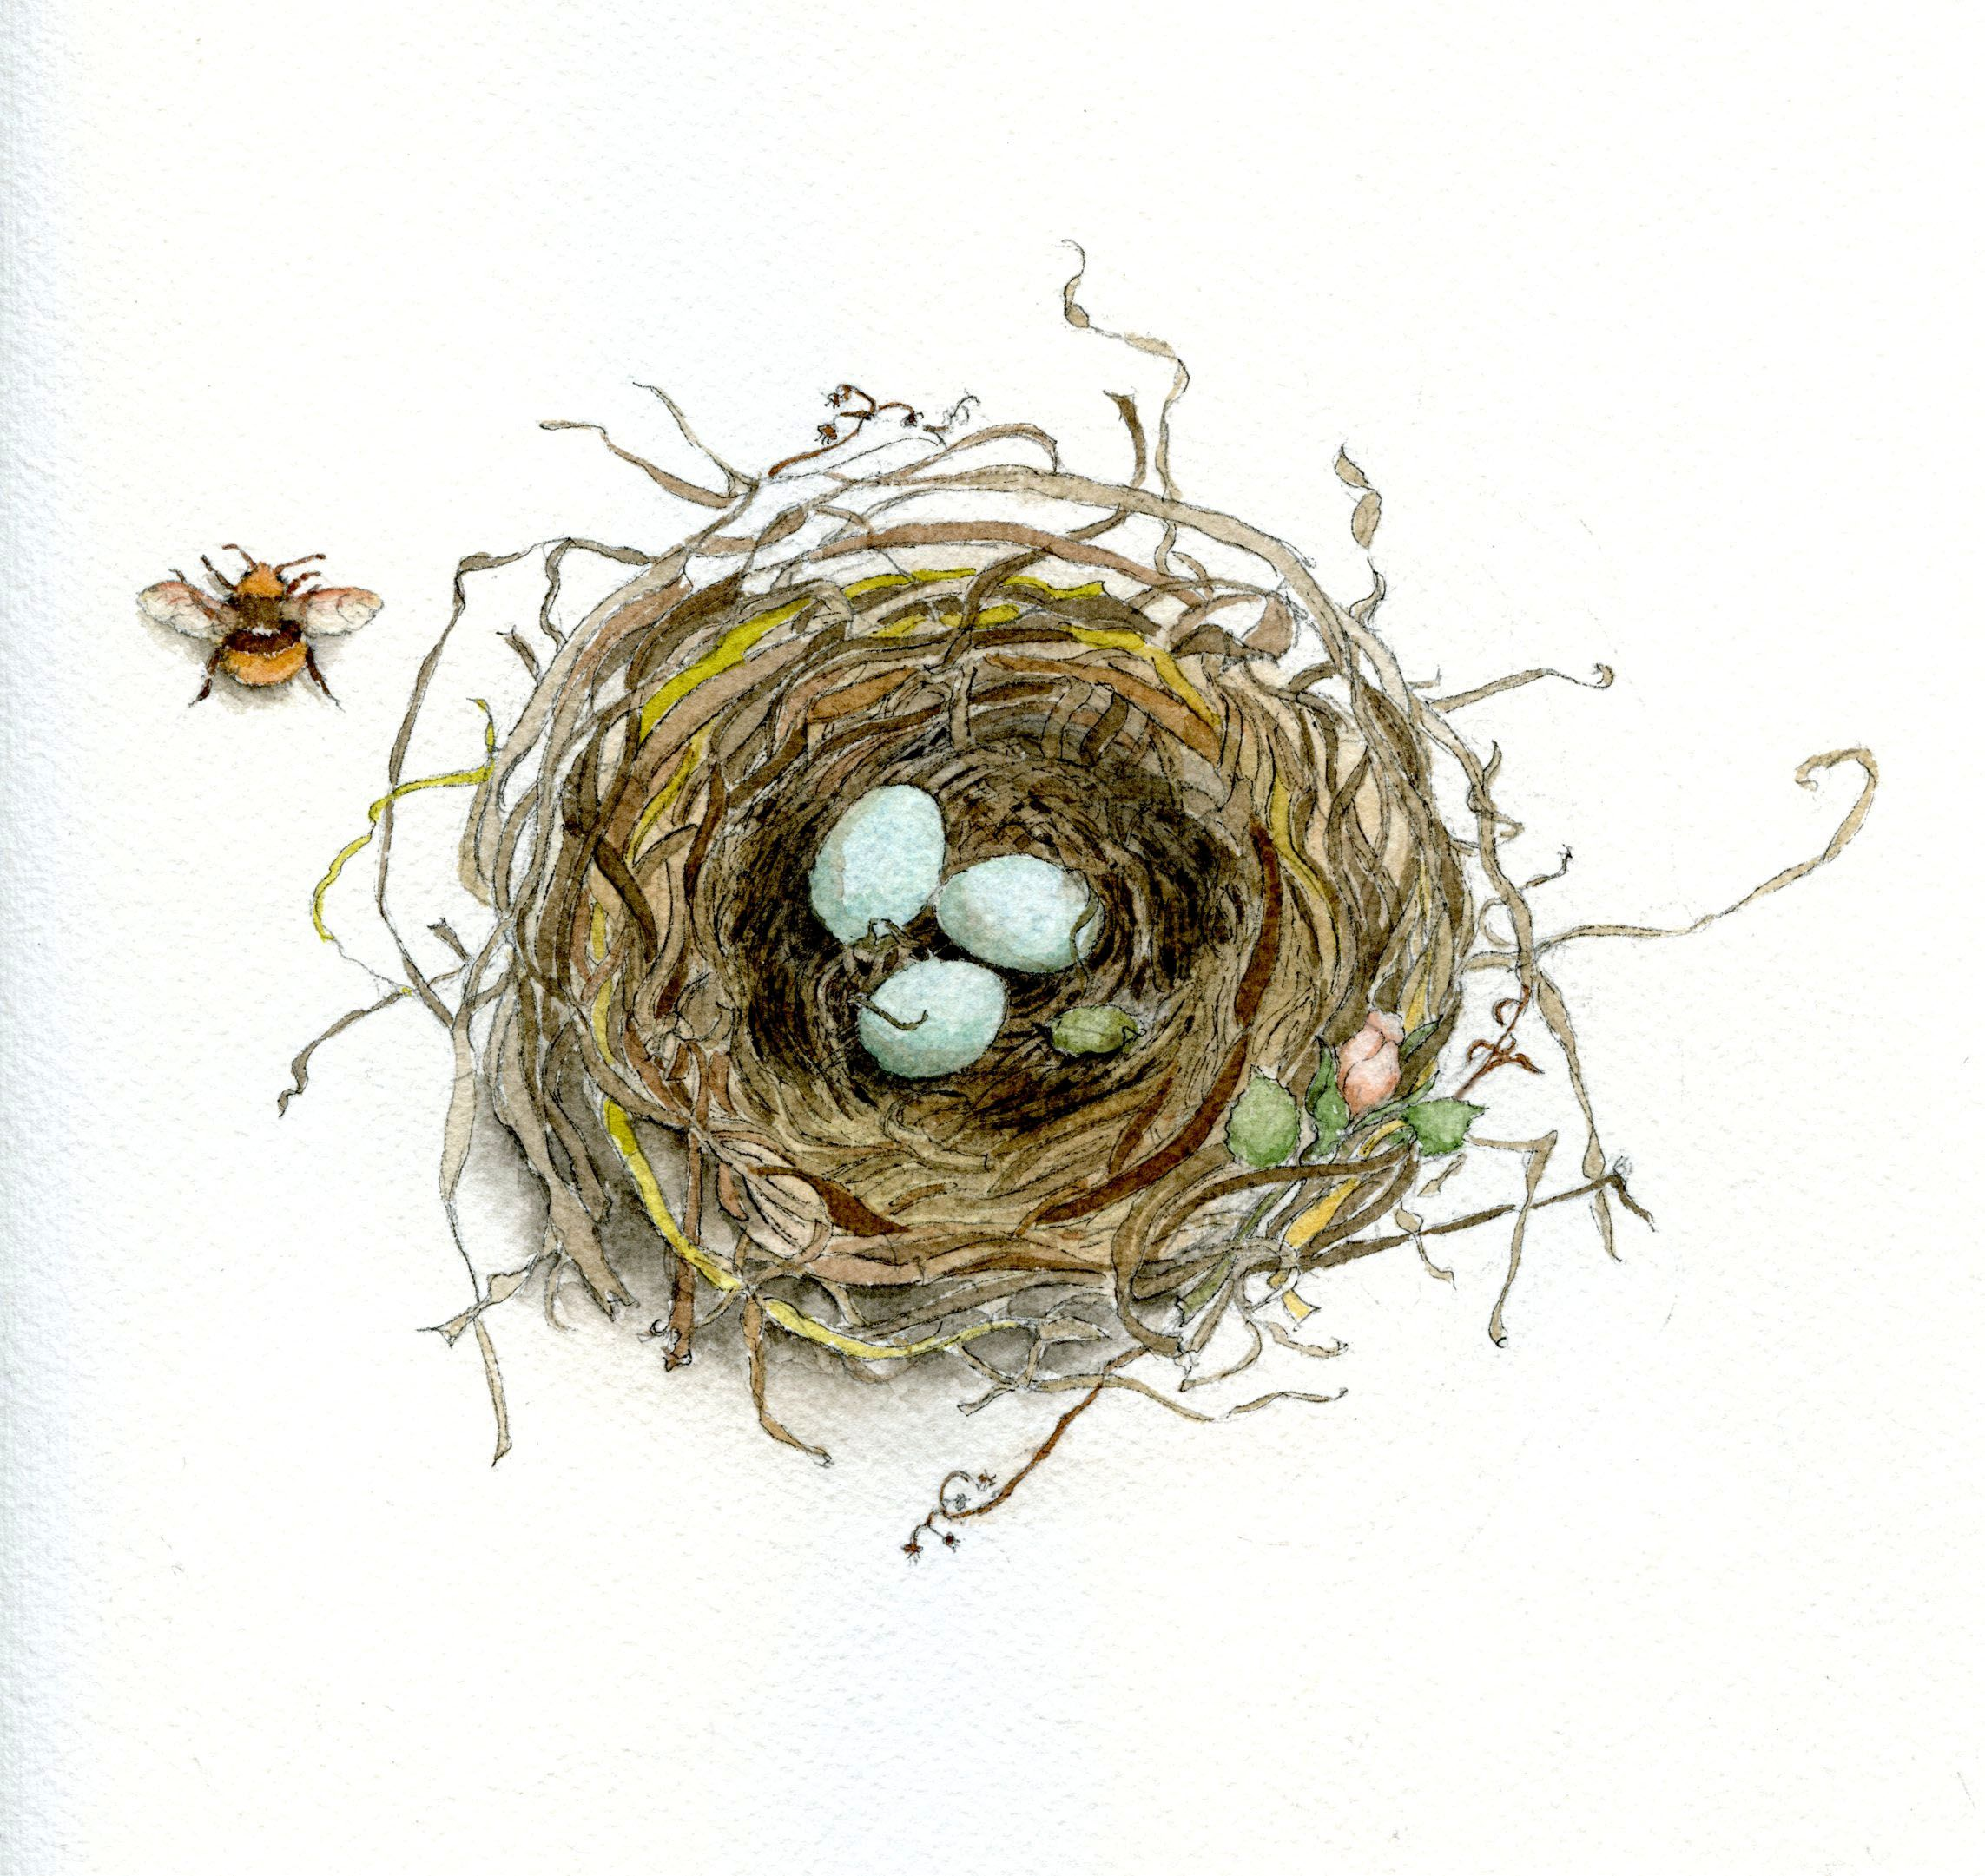 Drawing printout how to draw a bird nest - How To Draw A Bird S Nest And Add Color